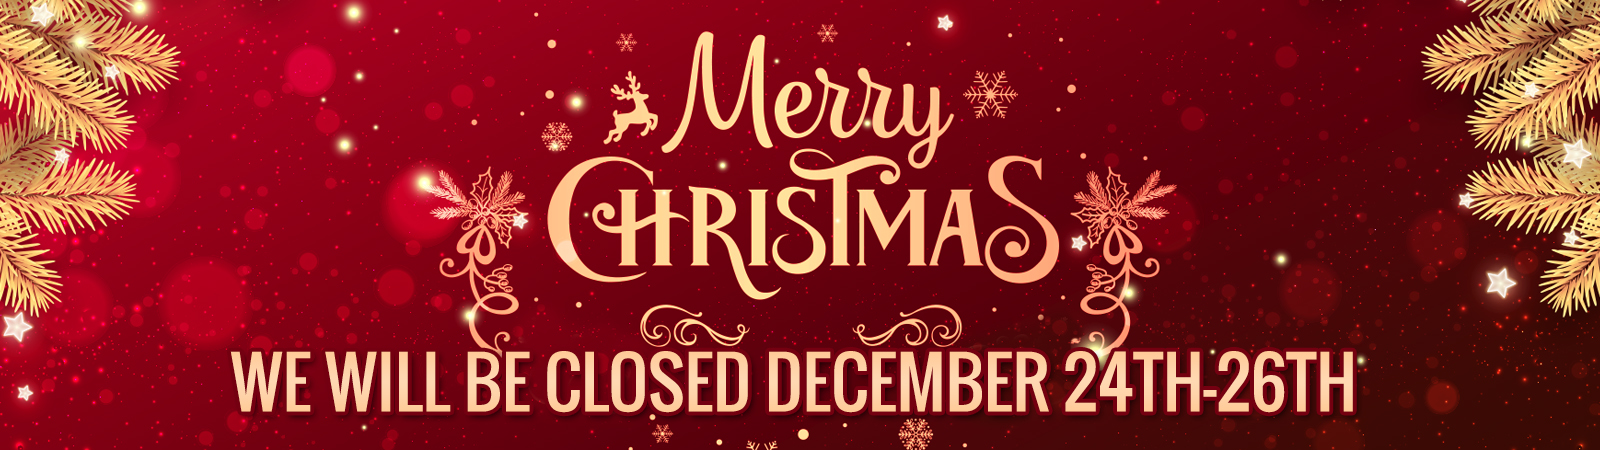 Merry Christmas we will be closed